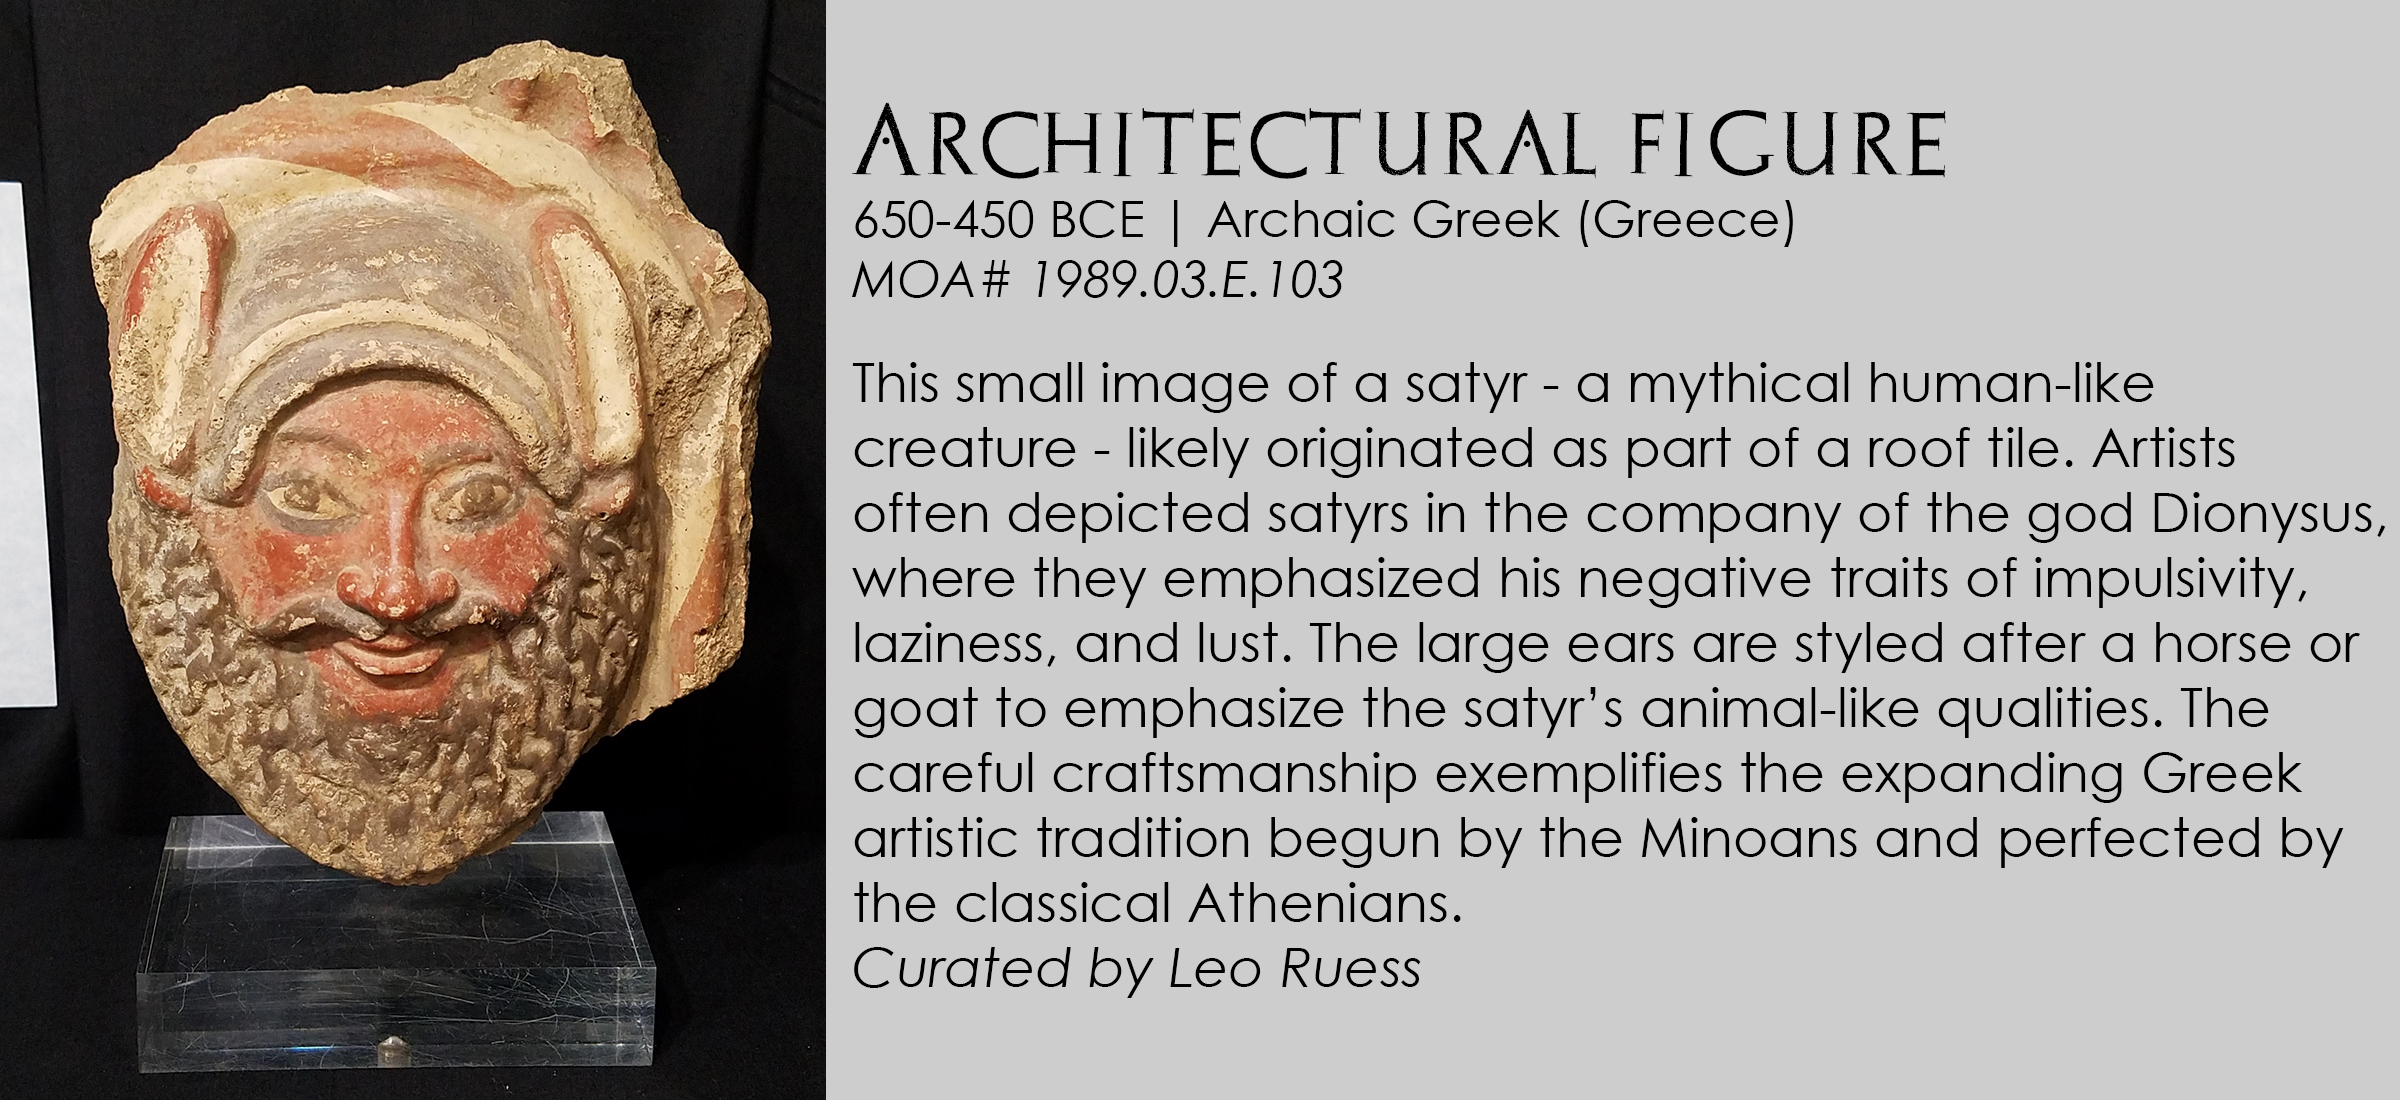 Architectural figure of a satyr from archaic Greece